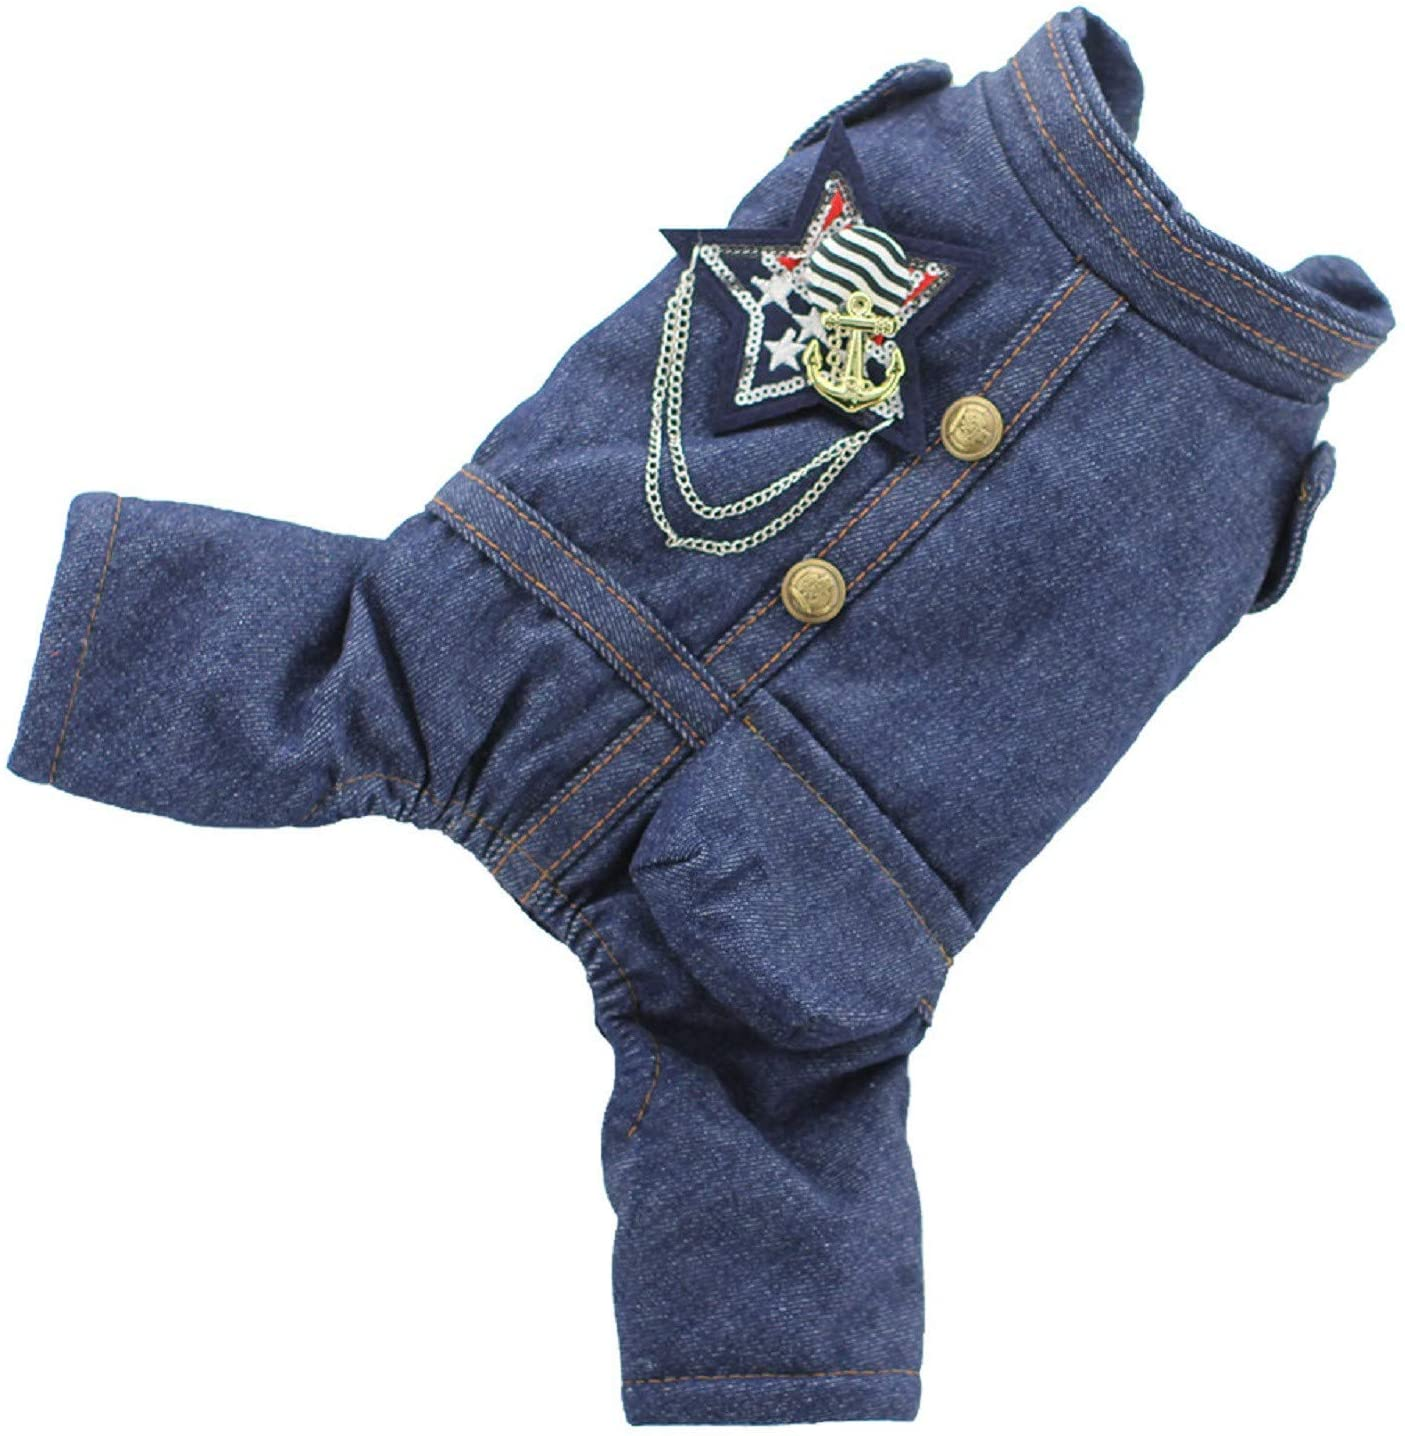 Beclgo Dog Costumes Winter Warm Pet Cat Jeans Jacket Soft Comfort Blue Puppy Denim Clothes Vintage Thickened Pet Coat for Small Medium Dogs Cats(xs,Blue)